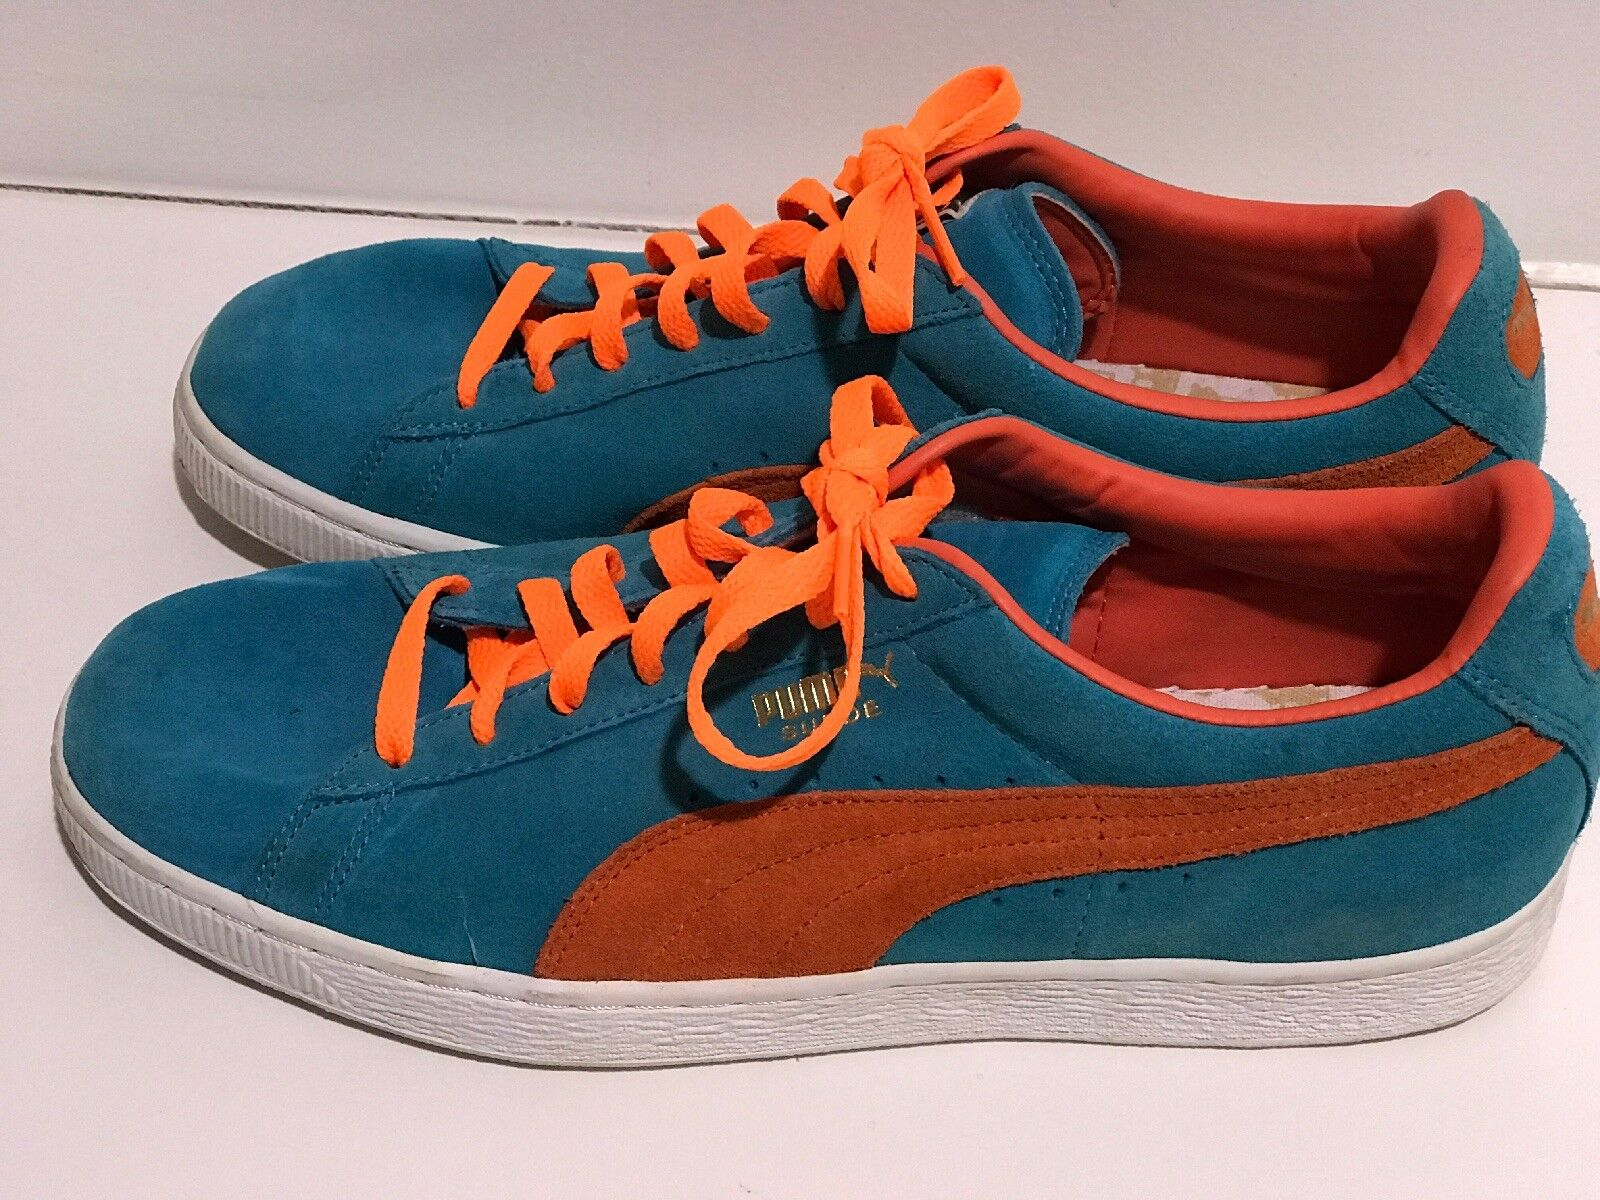 Puma Leather Suede Miami colors  orange And Teal Sport Lifestyle shoes 10.5